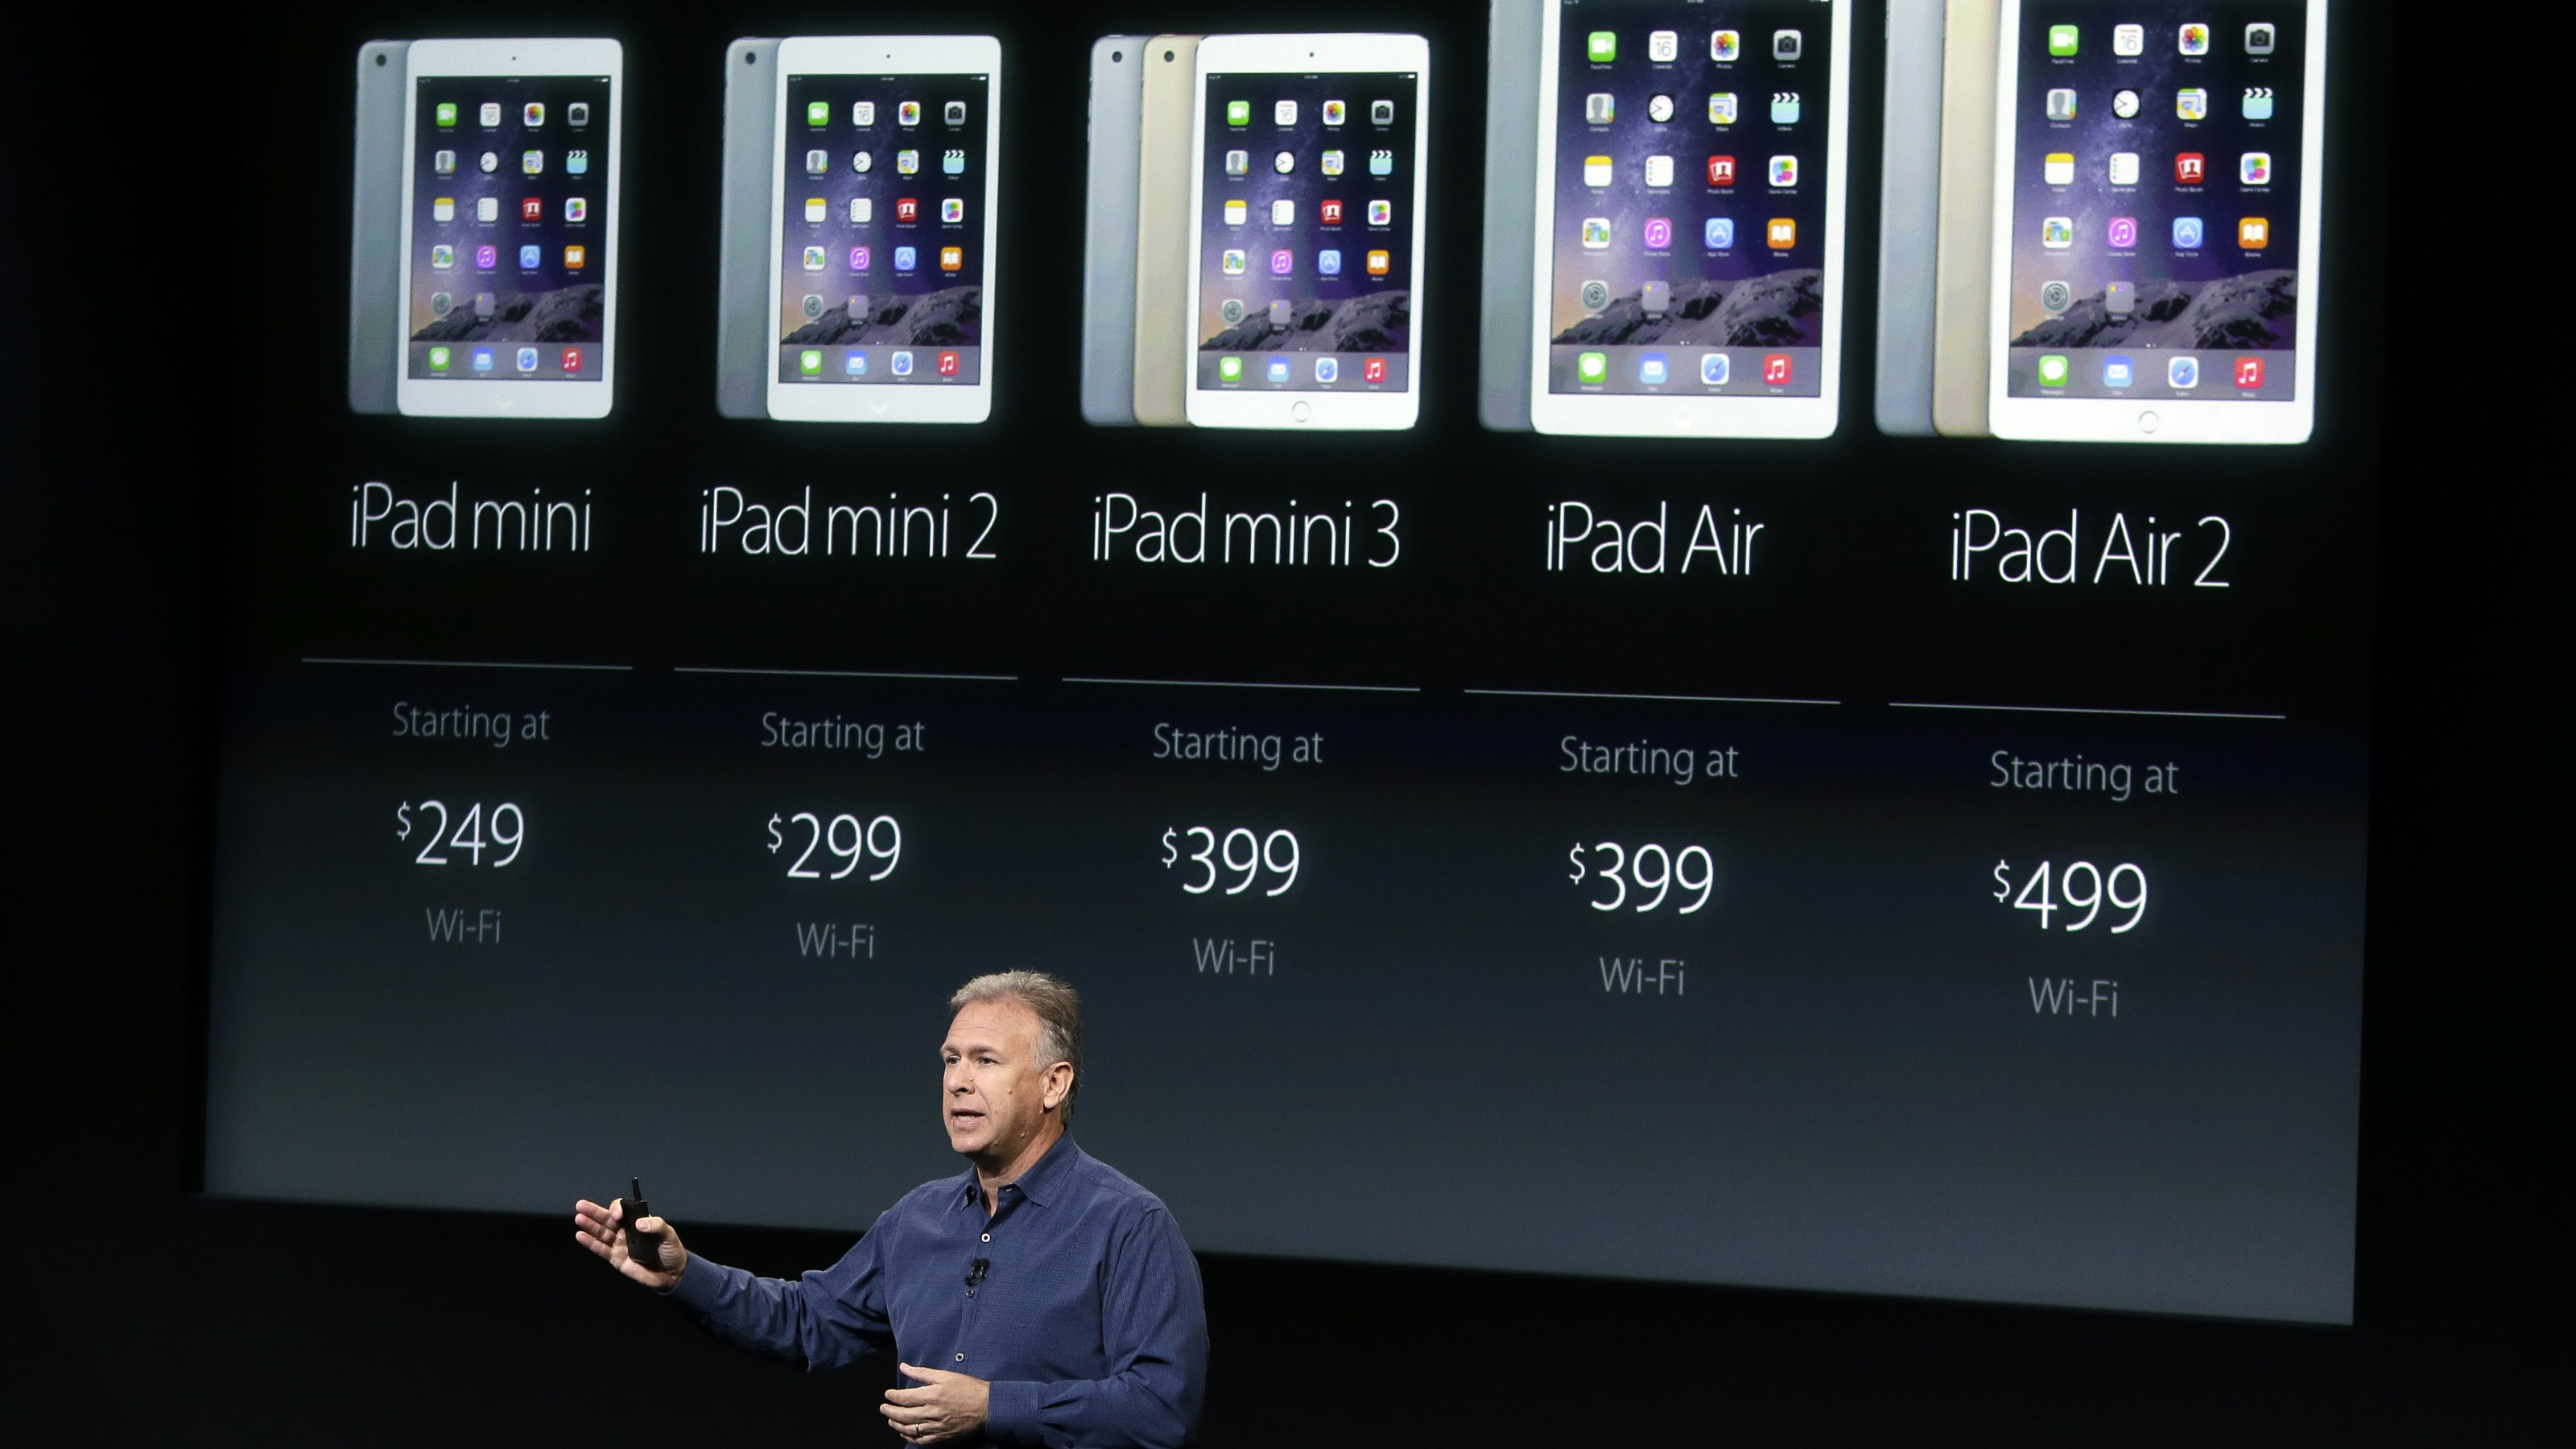 Phil Schiller, Apple's senior vice president of worldwide product marketing, discuss the pricing of the Apple iPad line-up during an event at Apple headquarters on Thursday, Oct. 16, 2014 in Cupertino, Calif. (AP Photo/Marcio Jose Sanchez)